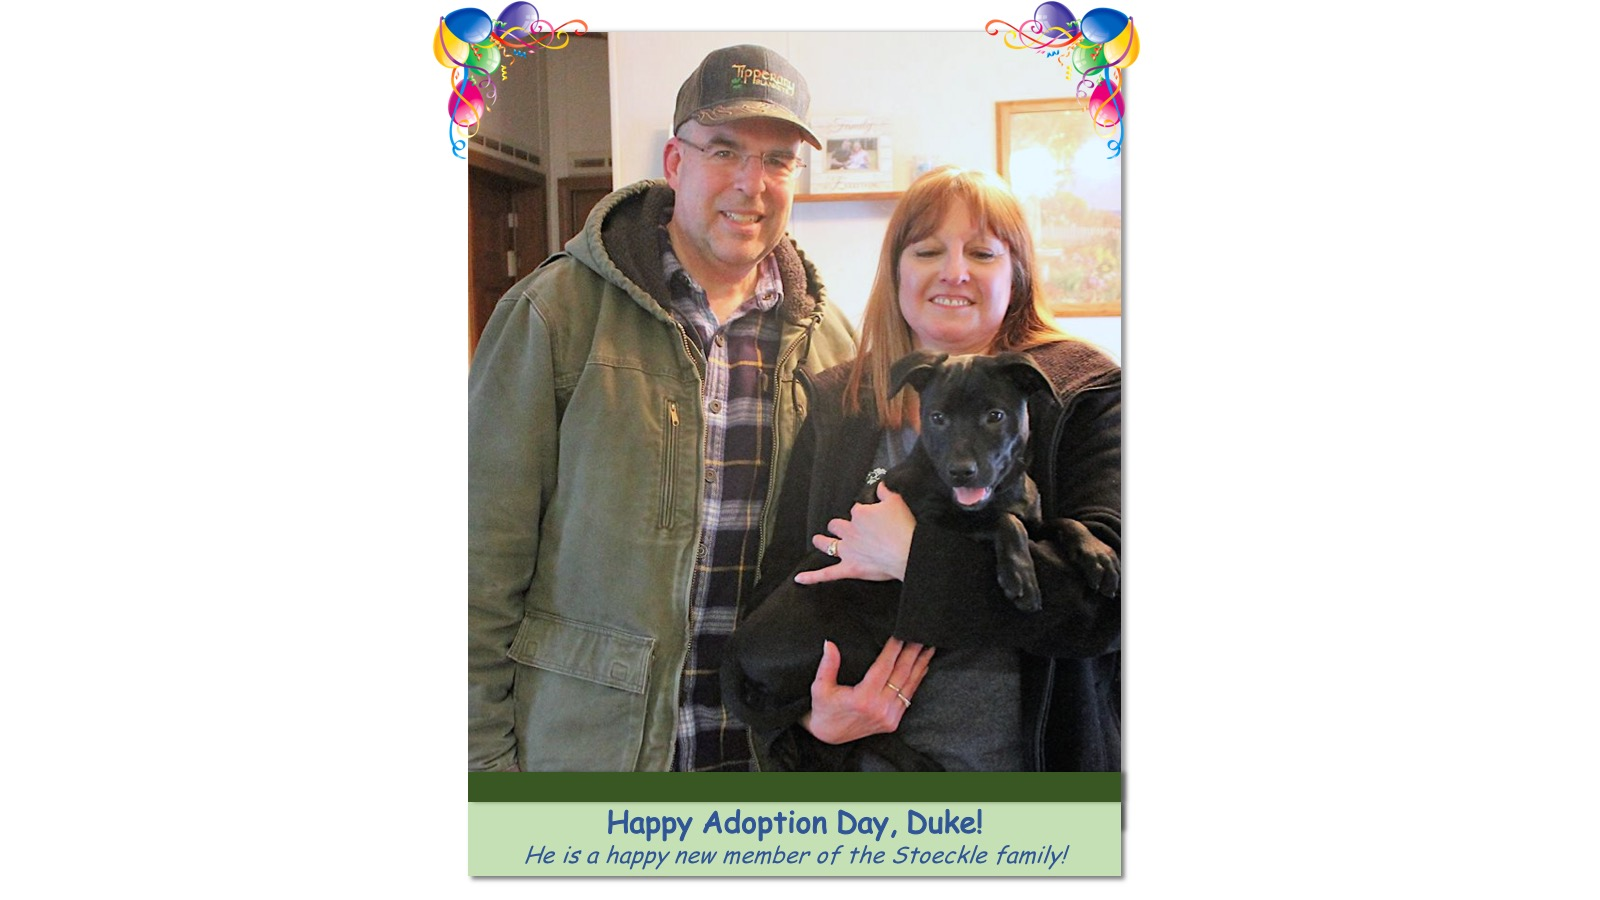 Duke_Adoption_Photo_201829432.jpg